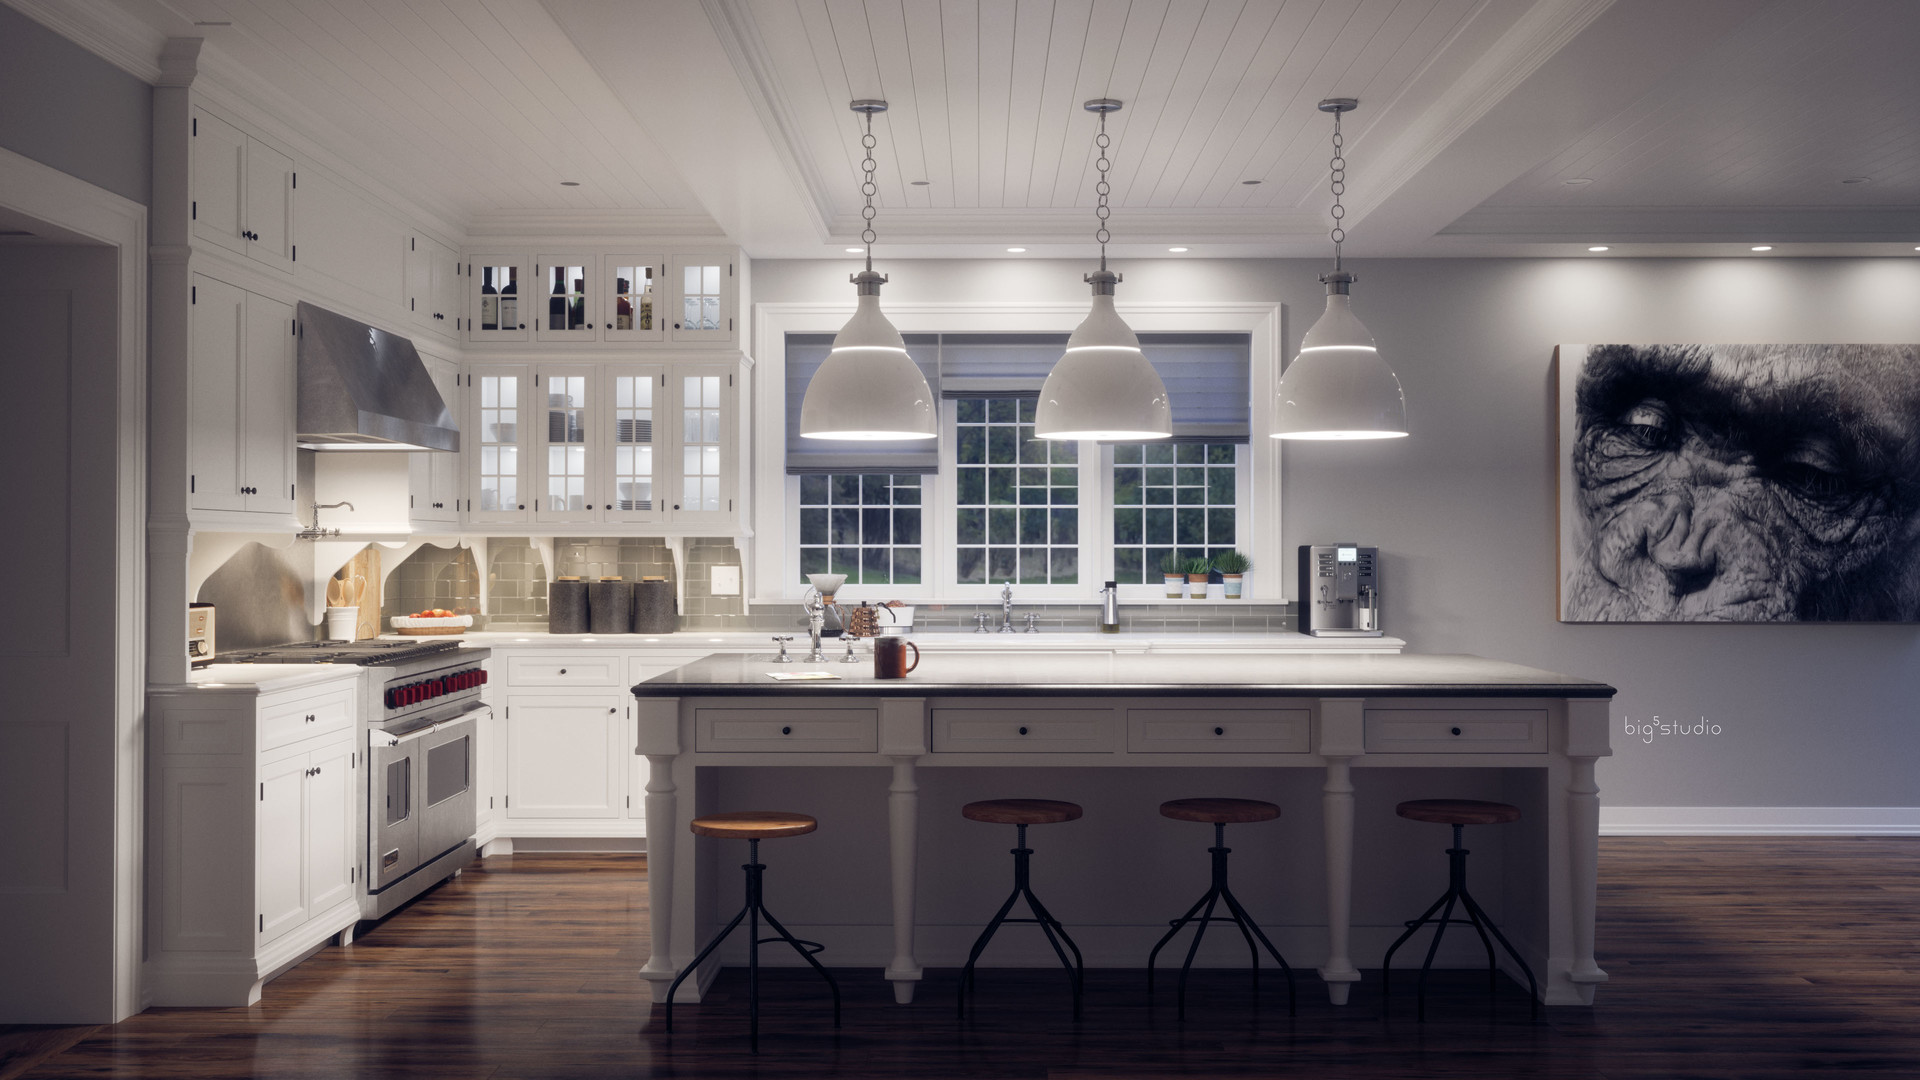 Neal biggs archviz kitchen ws 0001 beauty